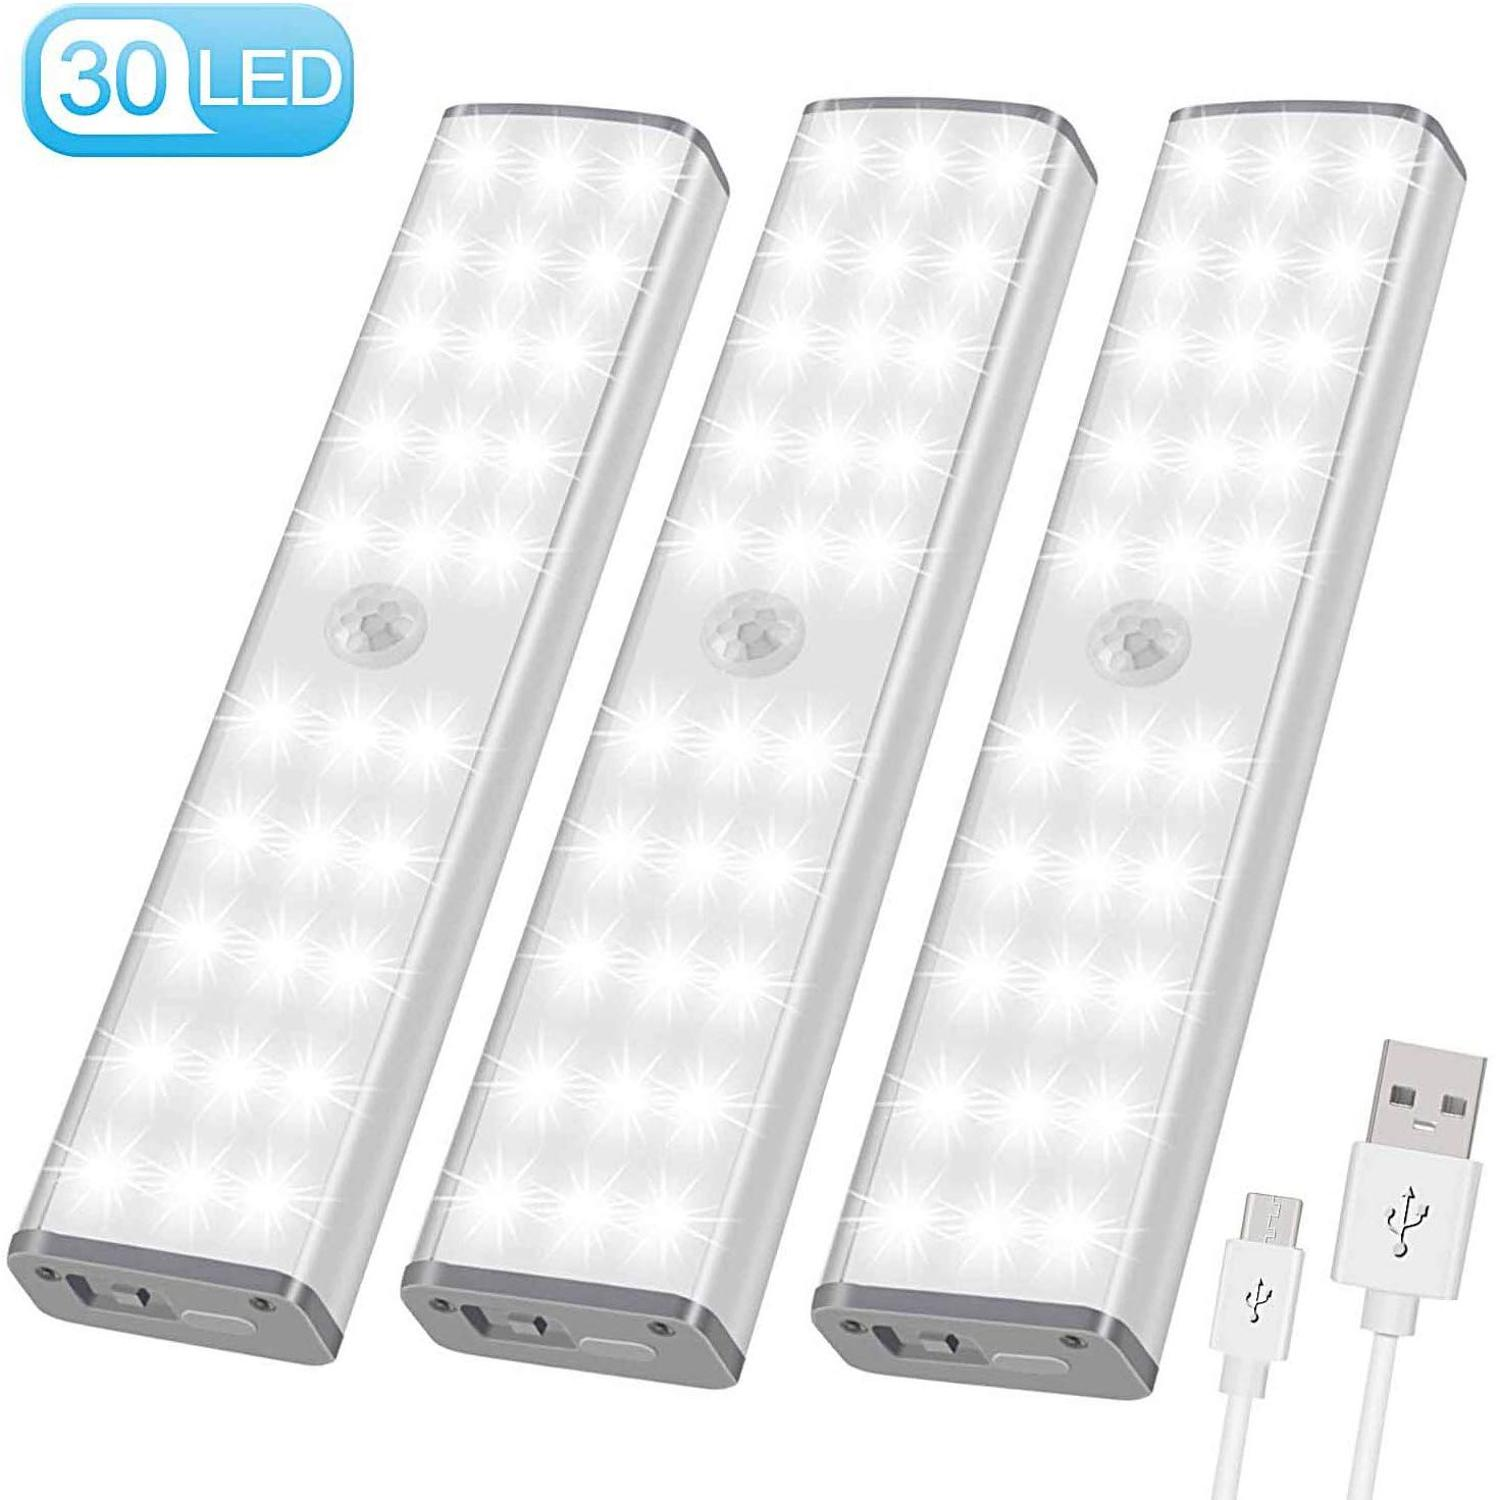 PIR Motion Sensor LED Light USB Wireless LED Kitchen/Wall Lamp 3Mode Brightness Level 30 LED Closet/Wardrobe/Under Cabinet Light